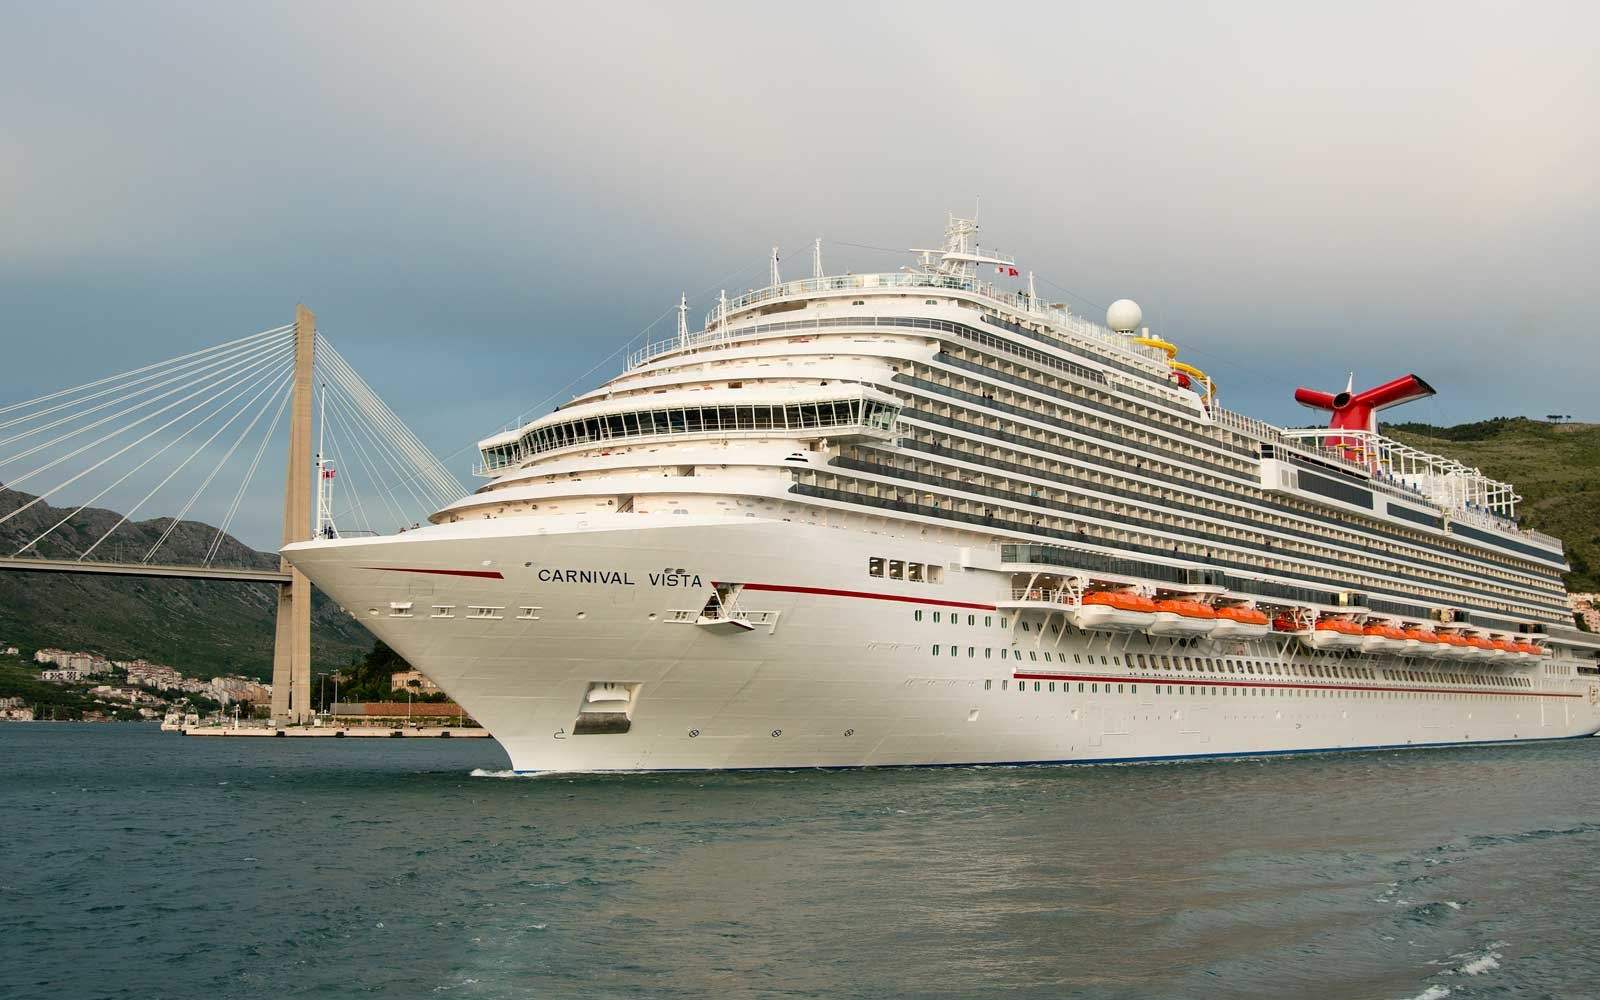 carnival cruise line application form